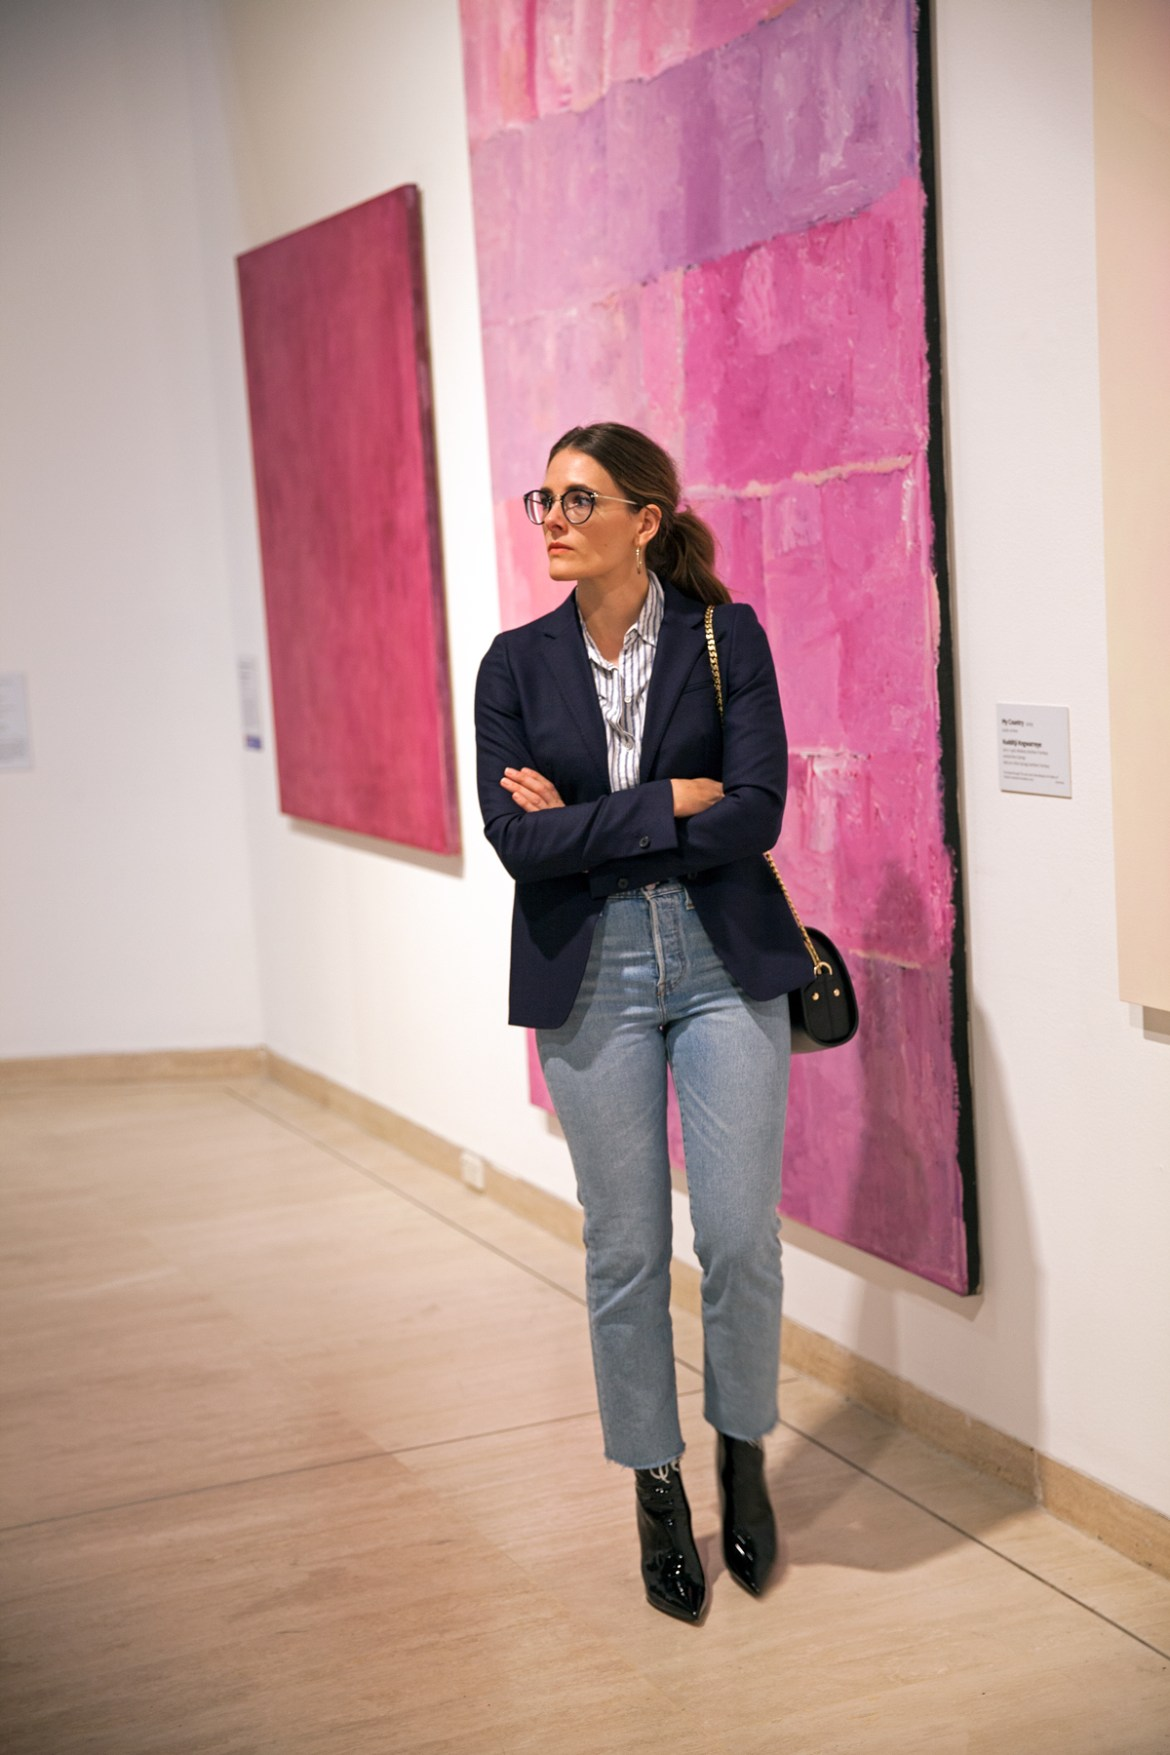 Essilor Transitions Colours Lenses worn with navy blazer, Levi's jeans and Alias Mae patent boots by Inspiring Wit blogger Jenelle at the Art Gallery of WA